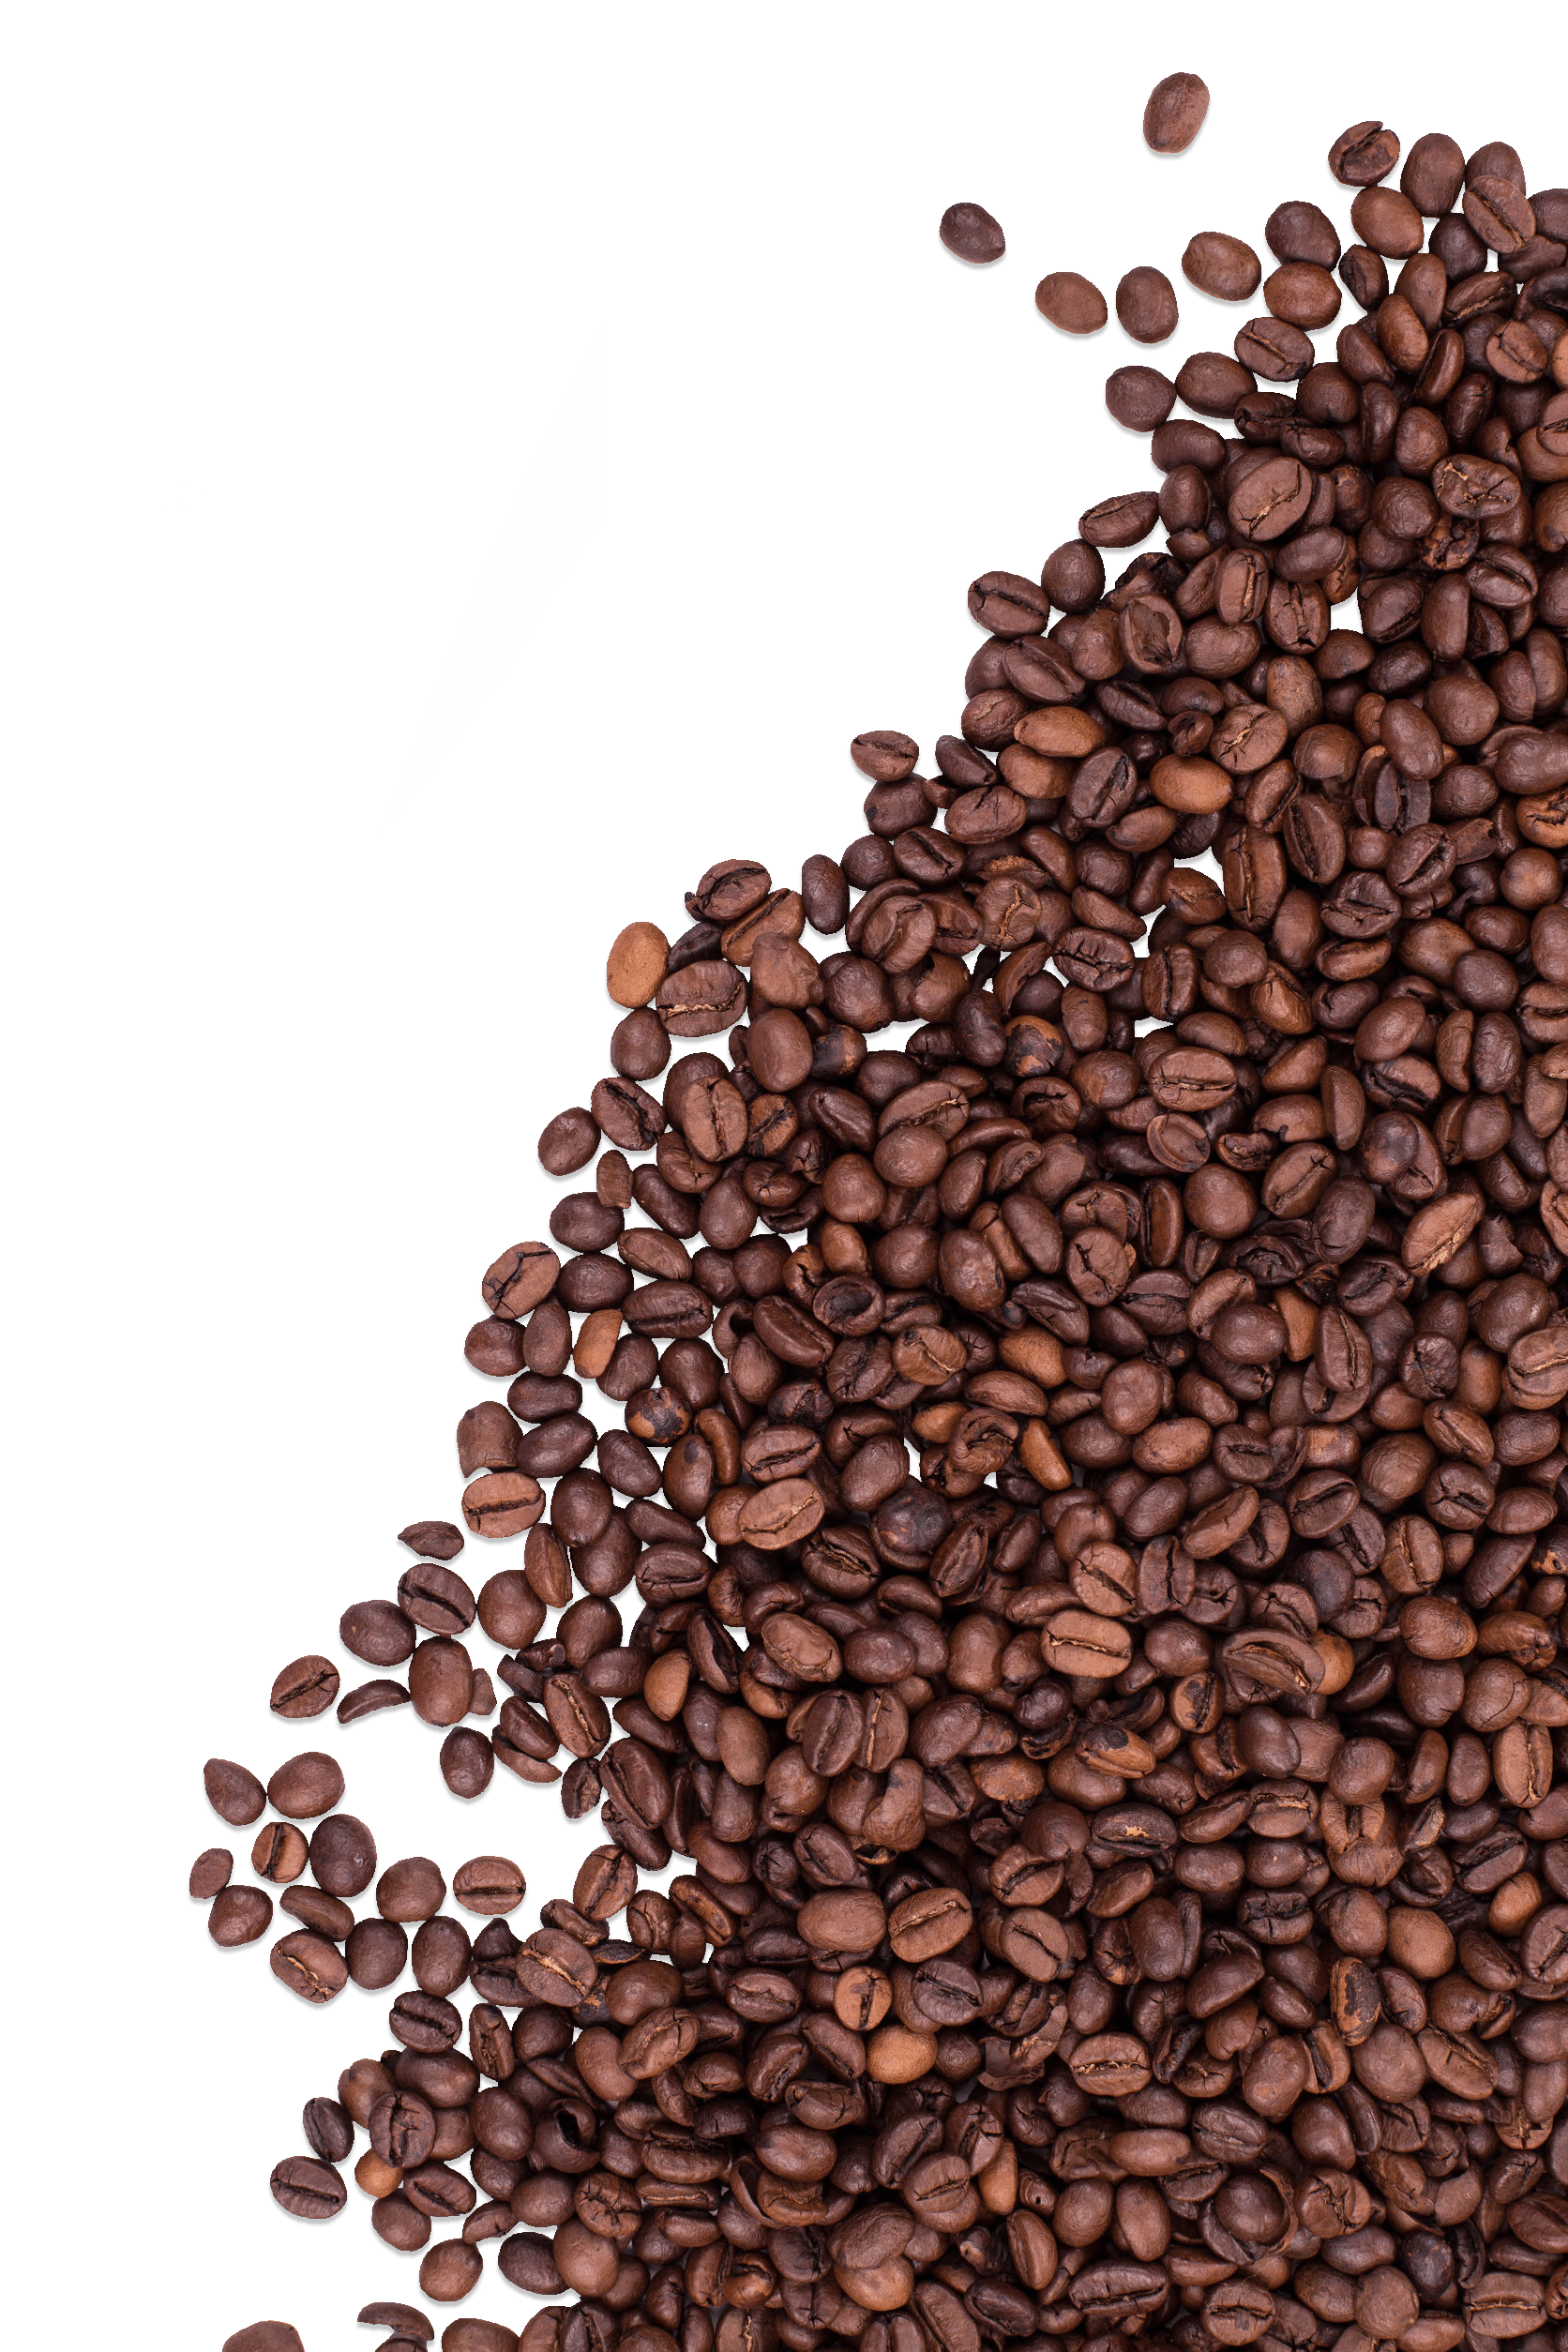 coffee marketing company nj